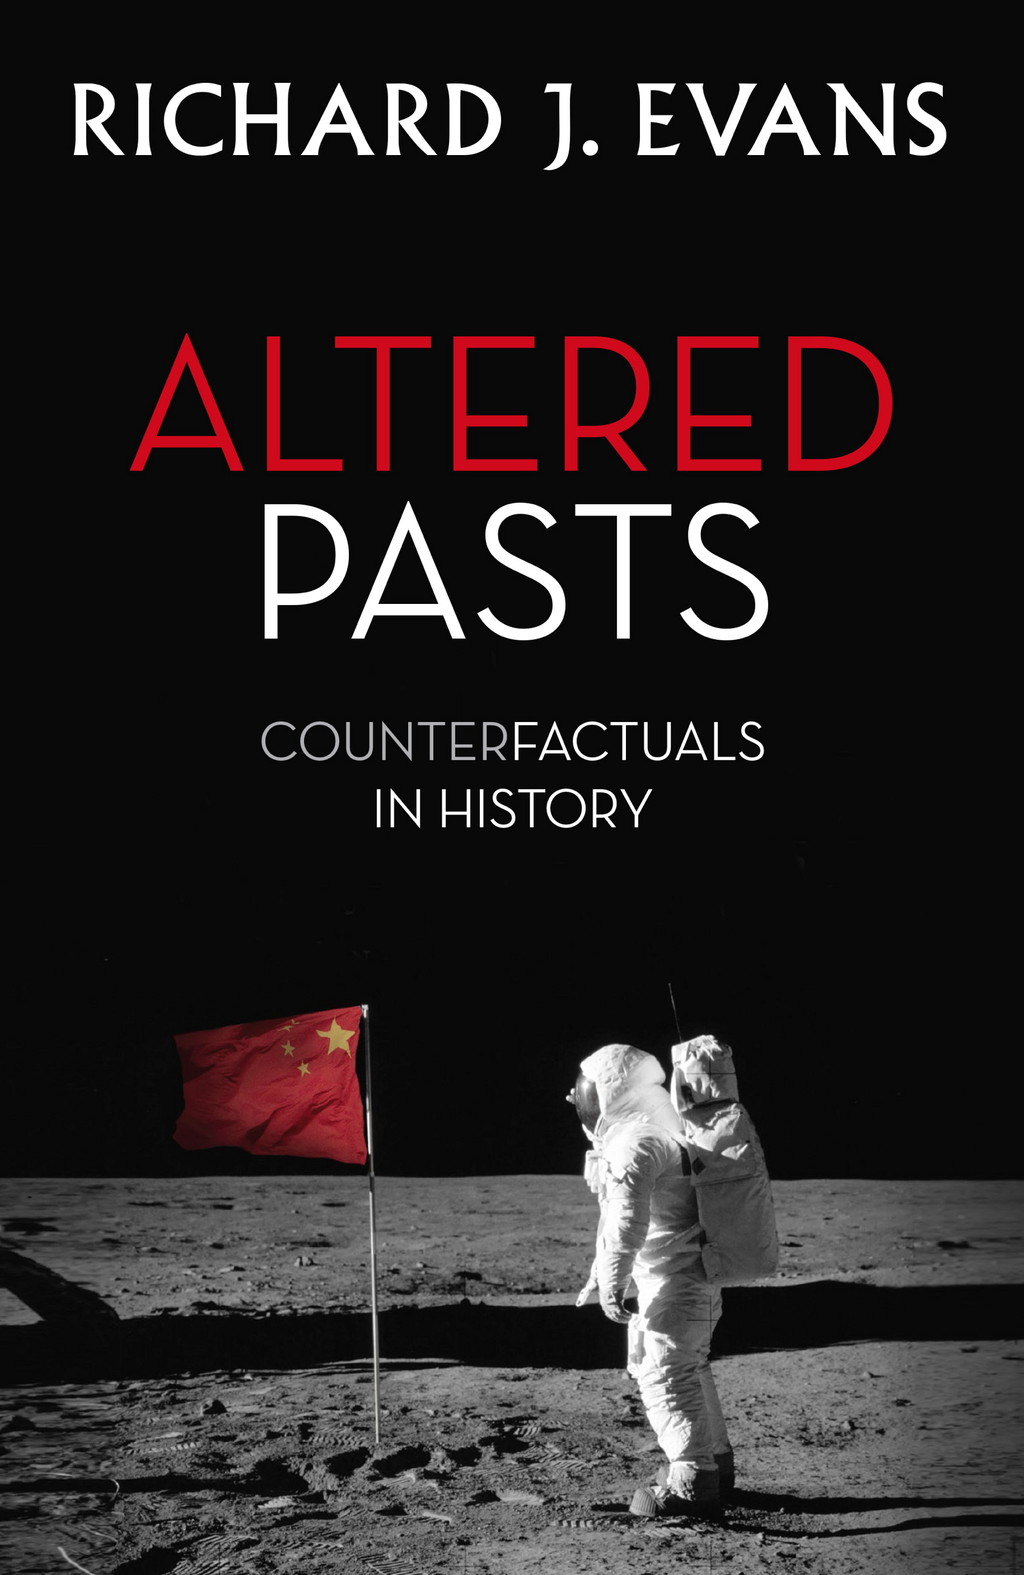 Altered Pasts Counterfactuals in History